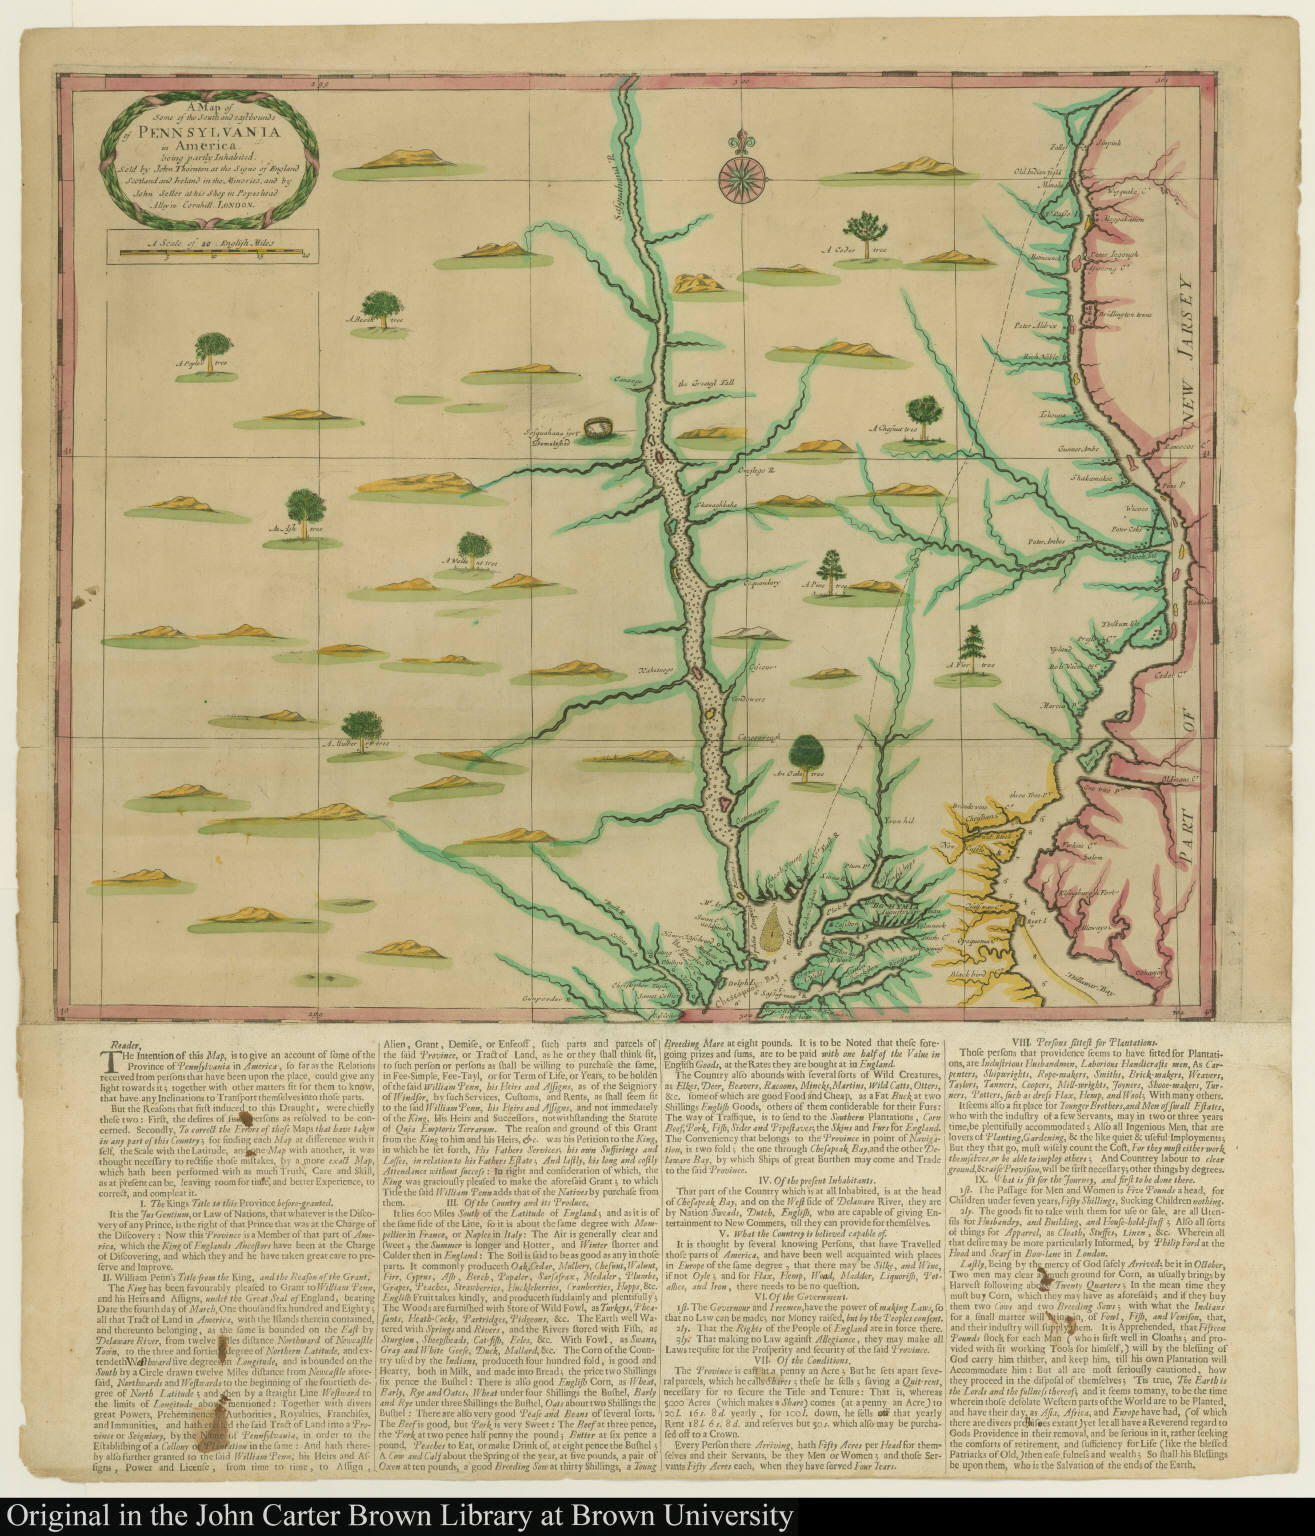 A Map of Some of the South and eastbounds of Pennsylvania in America. being partly Inhabited, ...